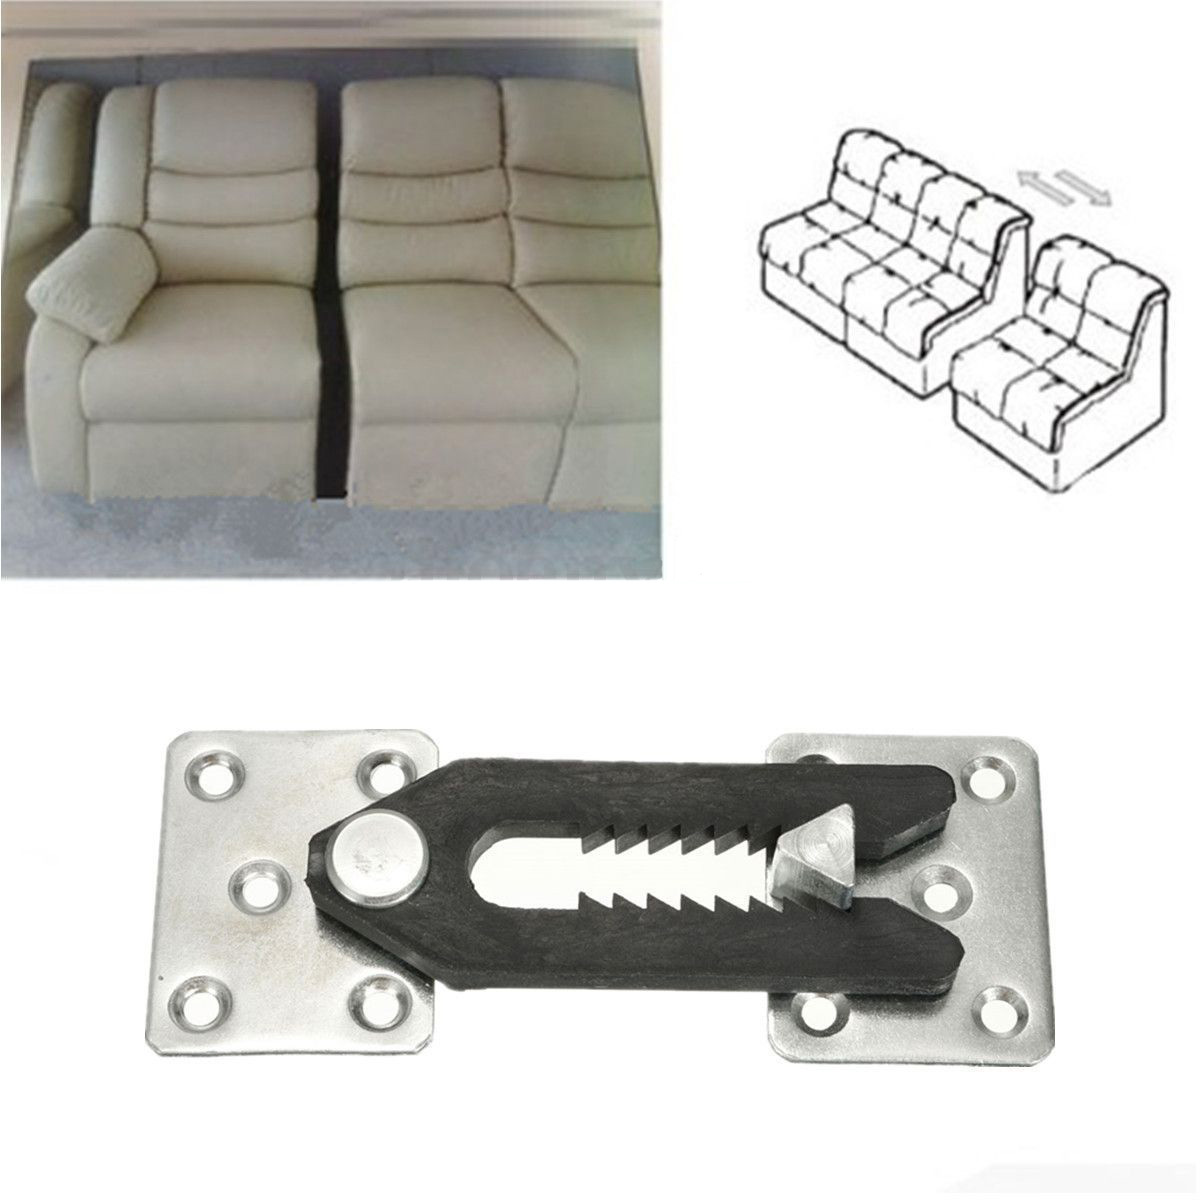 2pcs Sofa Sectional Furniture Couch Connector Plastic Bracket Snap